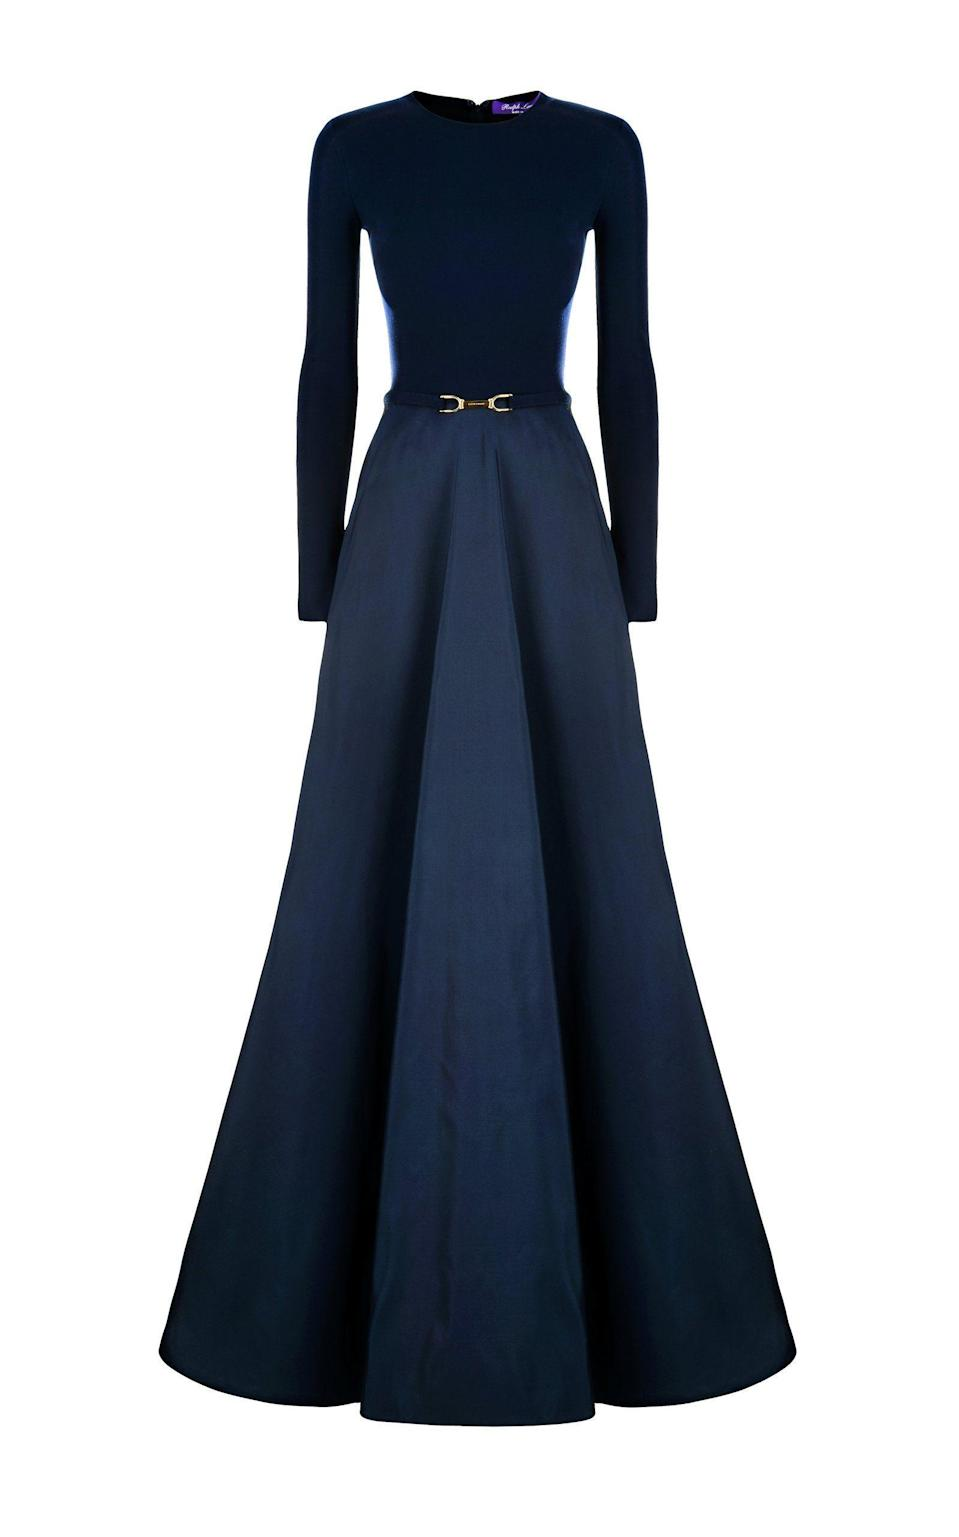 """<p><strong>Ralph Lauren</strong></p><p>modaoperandi.com</p><p><strong>$3290.00</strong></p><p><a href=""""https://go.redirectingat.com?id=74968X1596630&url=https%3A%2F%2Fwww.modaoperandi.com%2Fwomen%2Fp%2Fralph-lauren%2Fnadeesha-silk-evening-gown%2F503718&sref=https%3A%2F%2Fwww.harpersbazaar.com%2Fwedding%2Fbridal-fashion%2Fg36750122%2Fbest-mother-of-the-groom-dresses%2F"""" rel=""""nofollow noopener"""" target=""""_blank"""" data-ylk=""""slk:SHOP NOW"""" class=""""link rapid-noclick-resp"""">SHOP NOW</a></p><p>Meet the ultimate in black tie dressing. This look is formal and glam, yet undeniably sleek and modern for the mom after a bit of structure–and full coverage.<br></p>"""